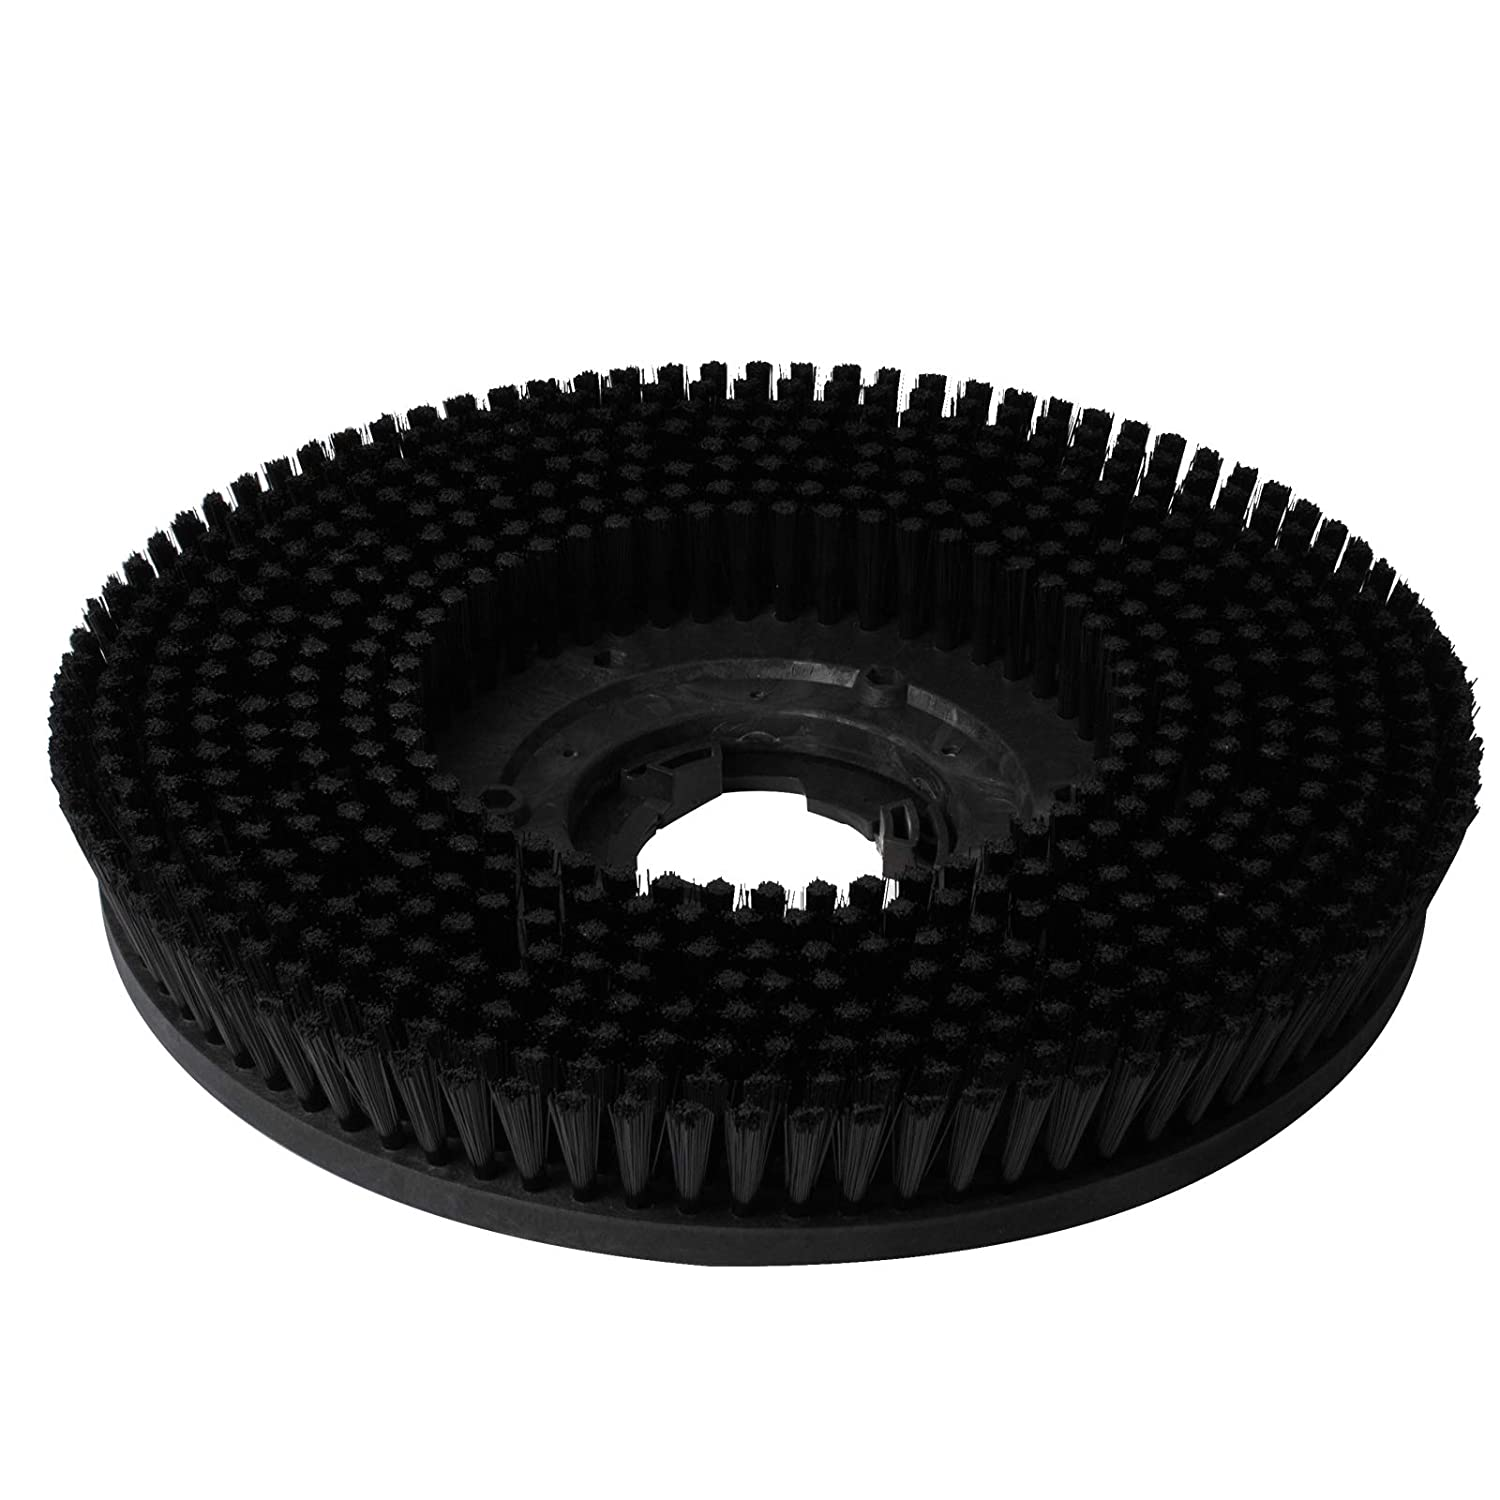 51705A 17 Inch Polypropylene Scrub Brush Commercial by Wadoy Comptible with Cl-arke CFP Pro 17HD Polisher